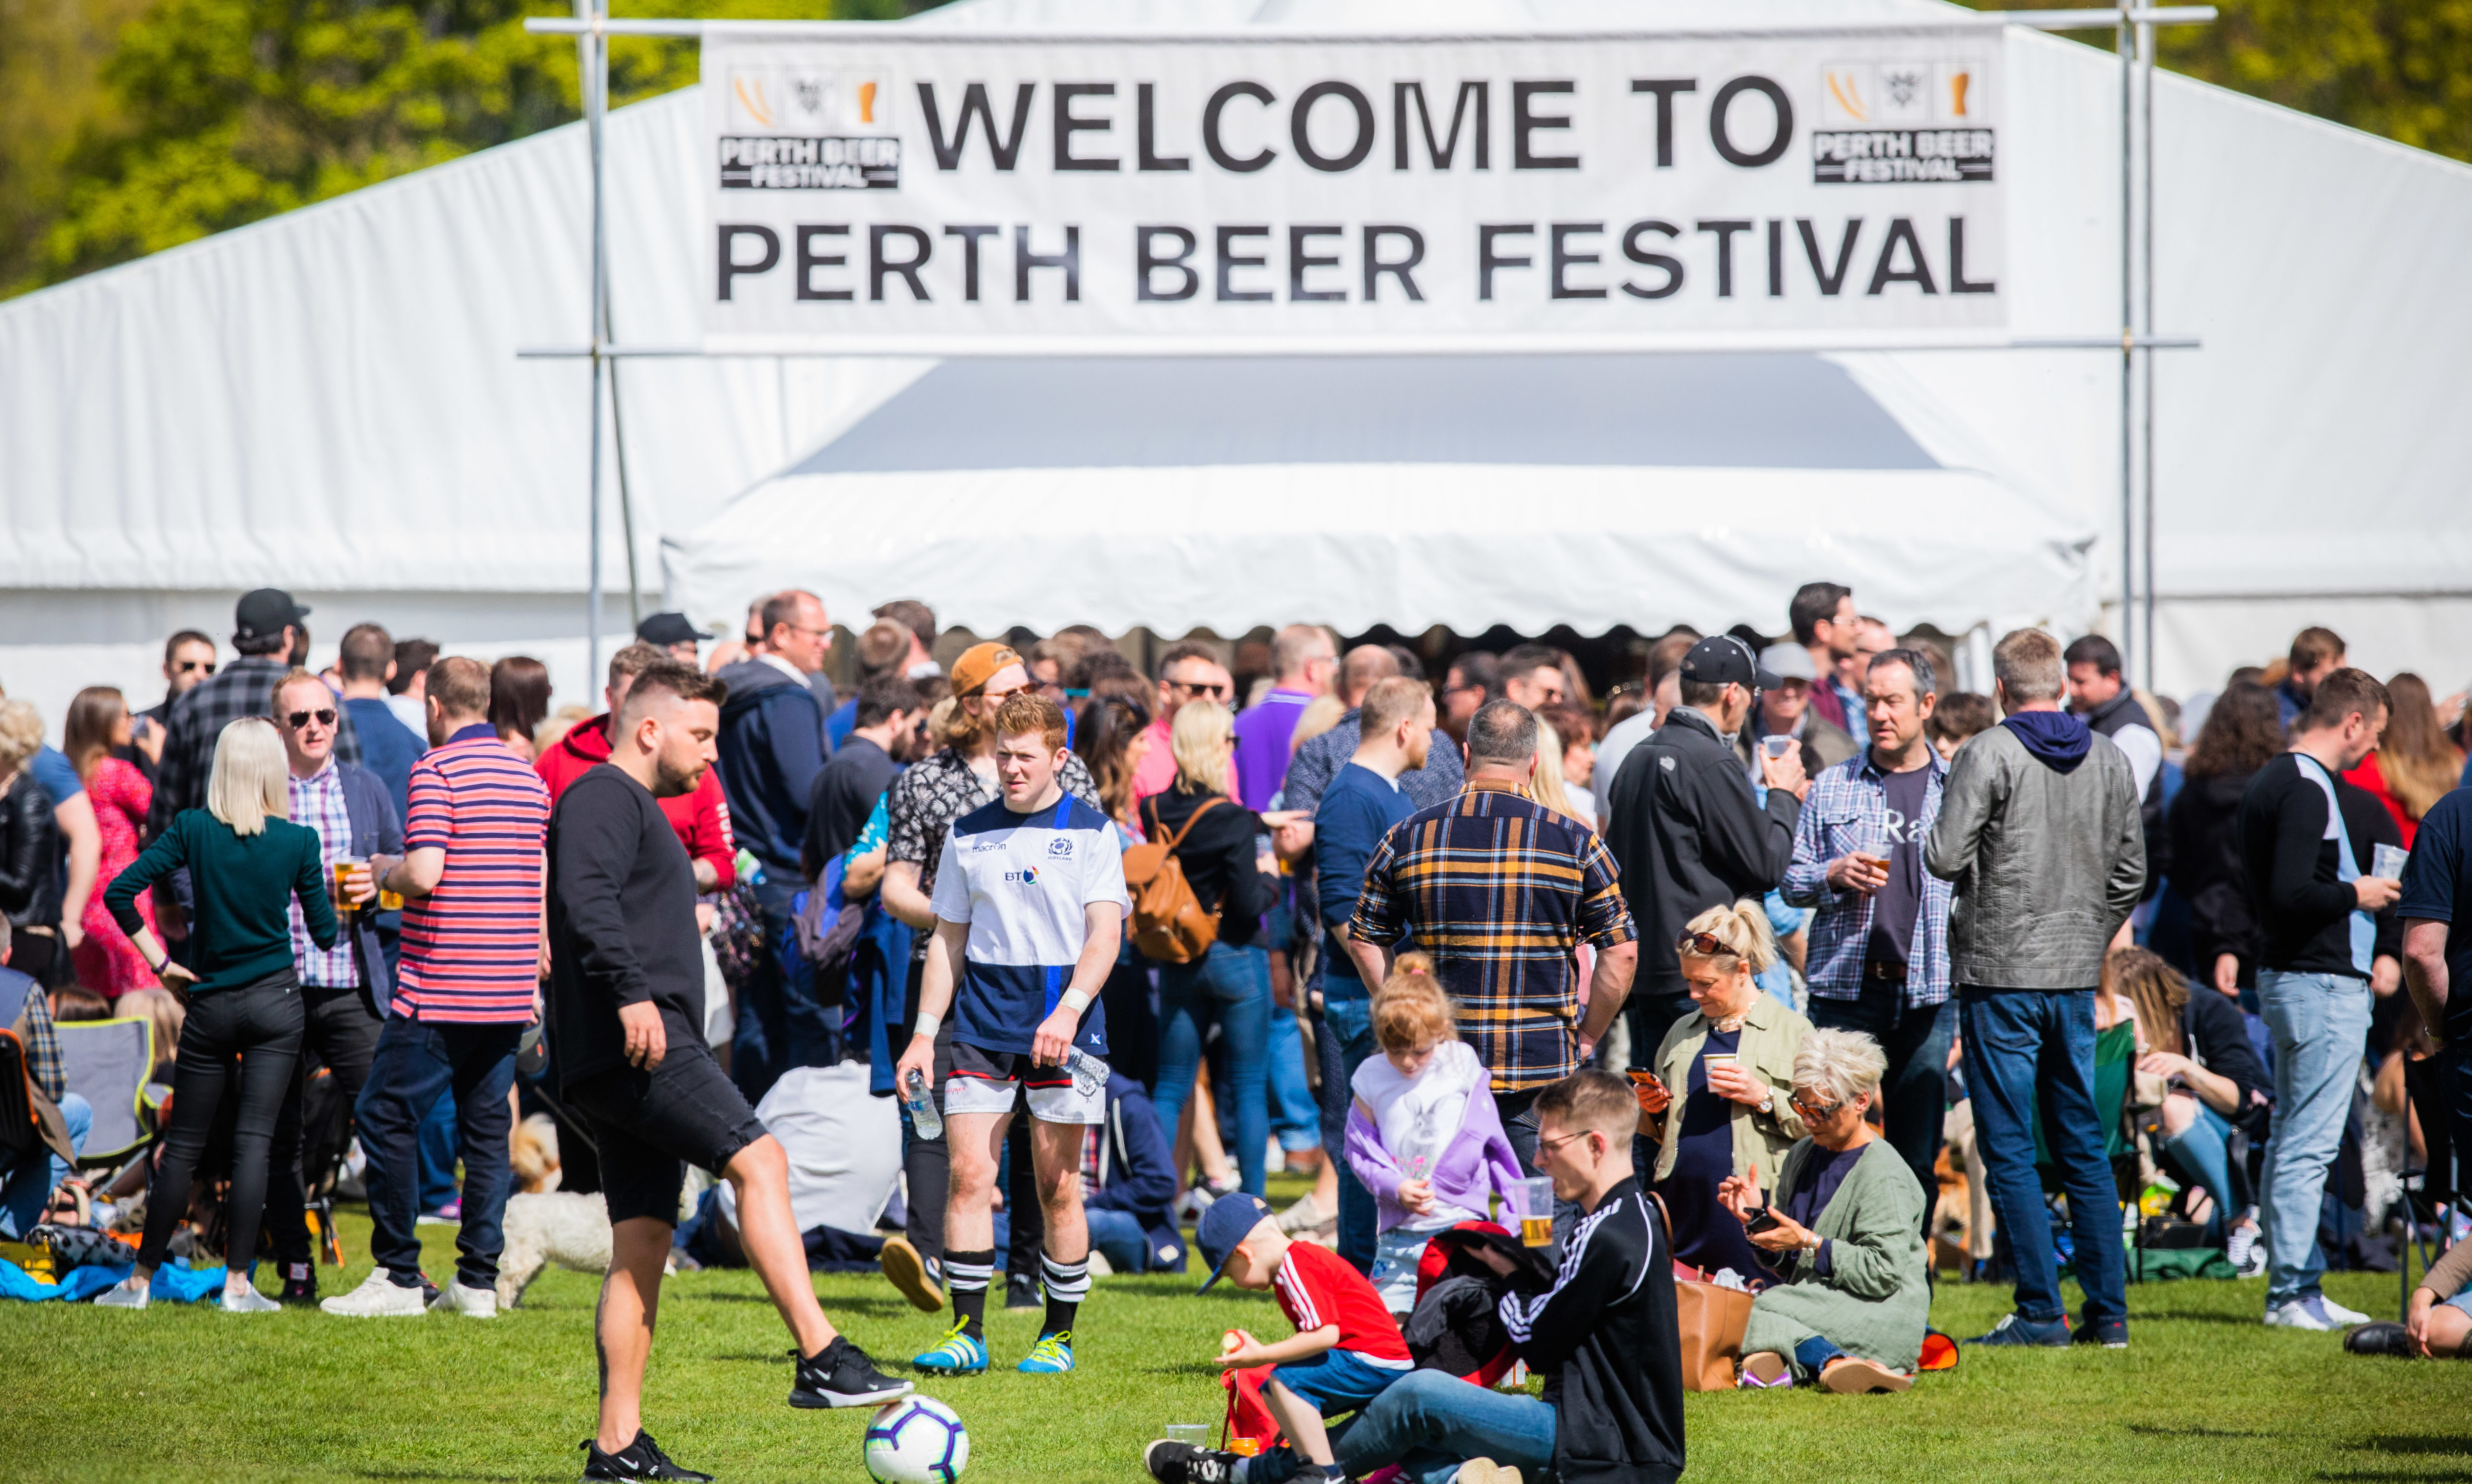 Perth Beer Festival was another great success for organisers Perthshire RFC.